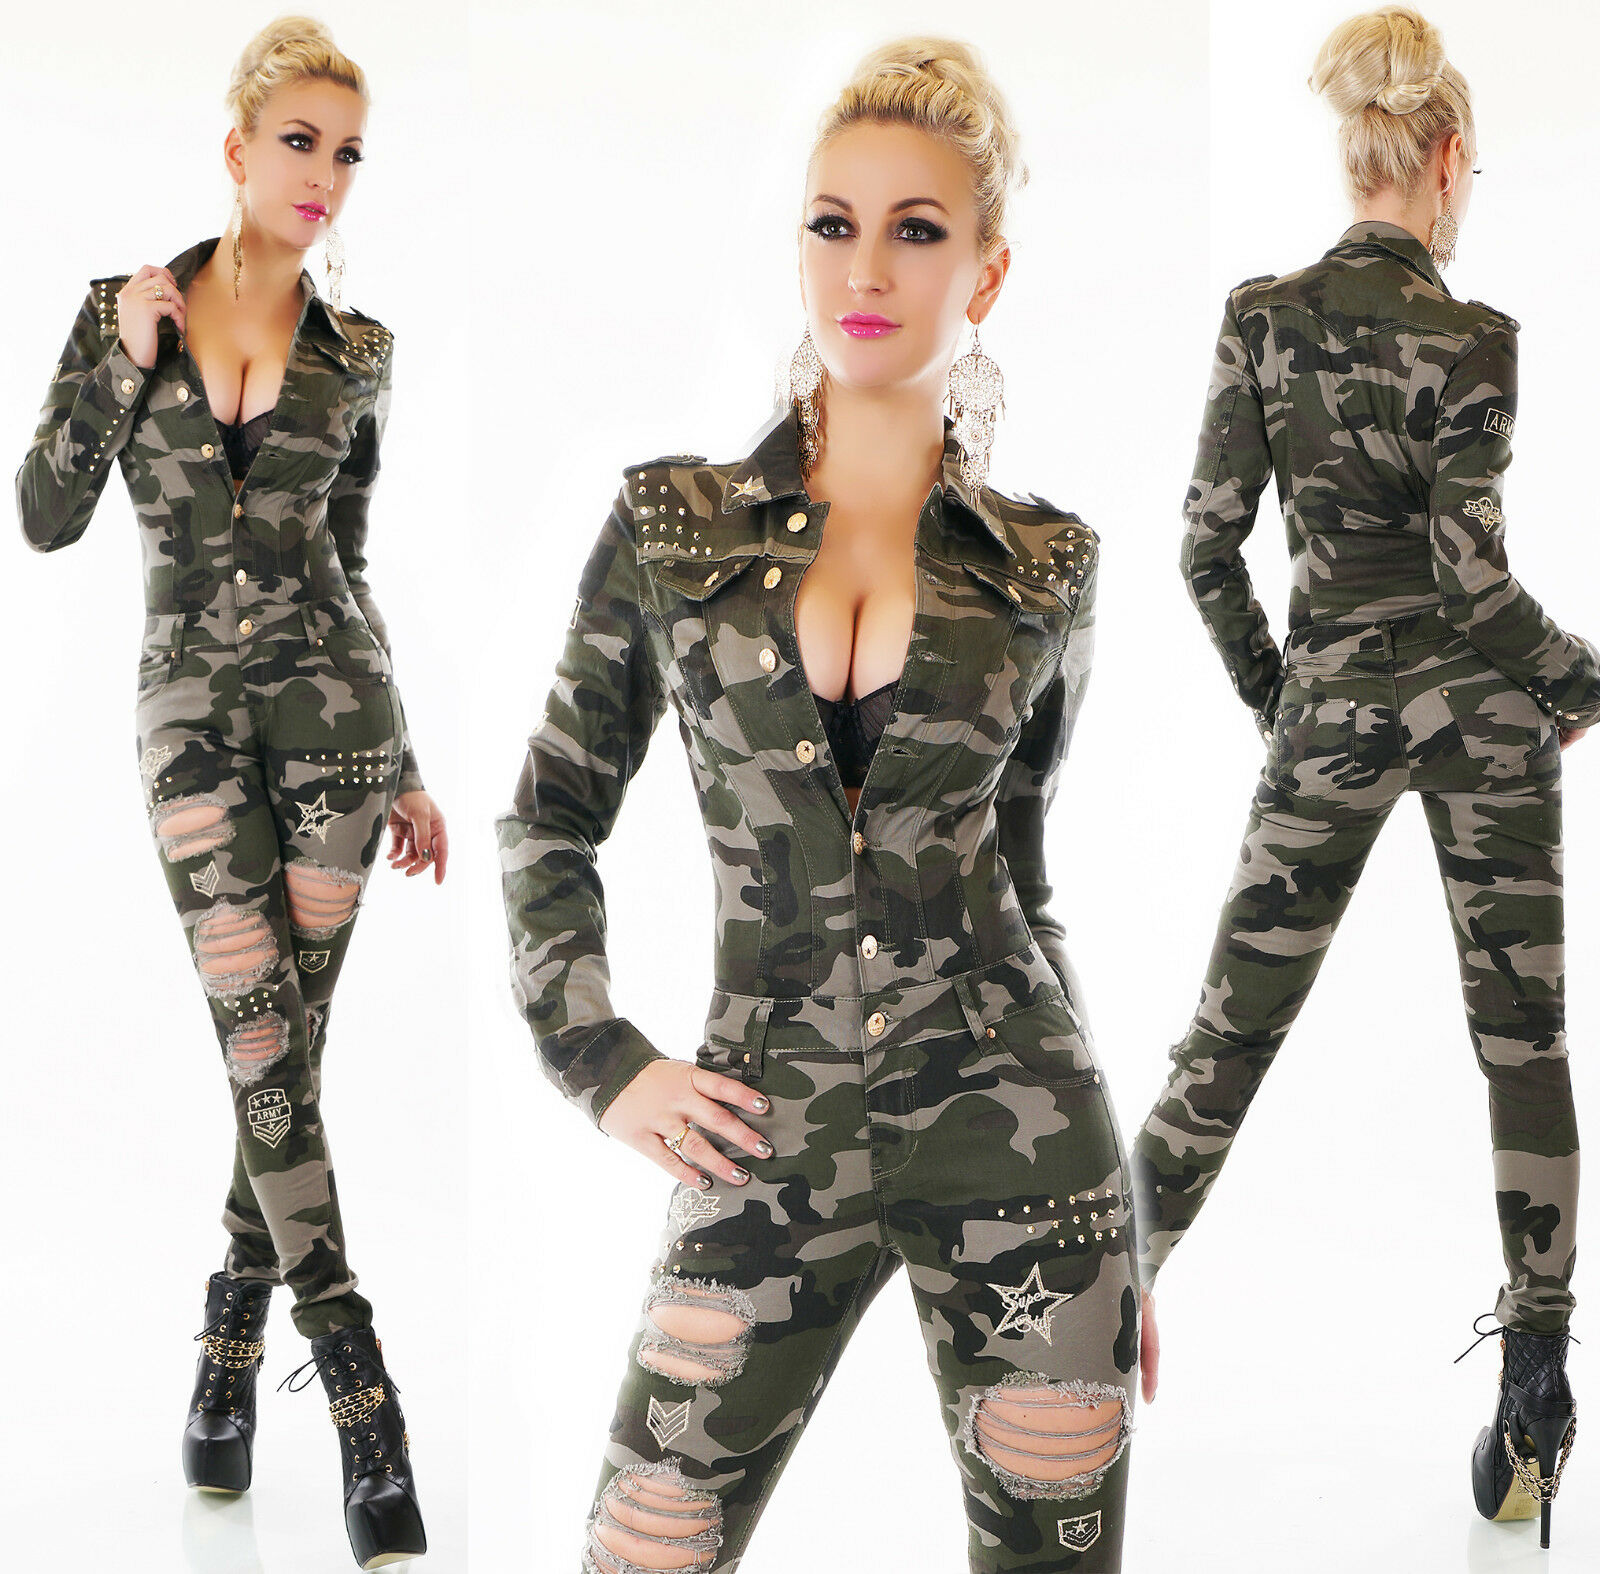 Camouflage Combinaison Militaire globale des larmes, broderie or, rivets stretch NEUF